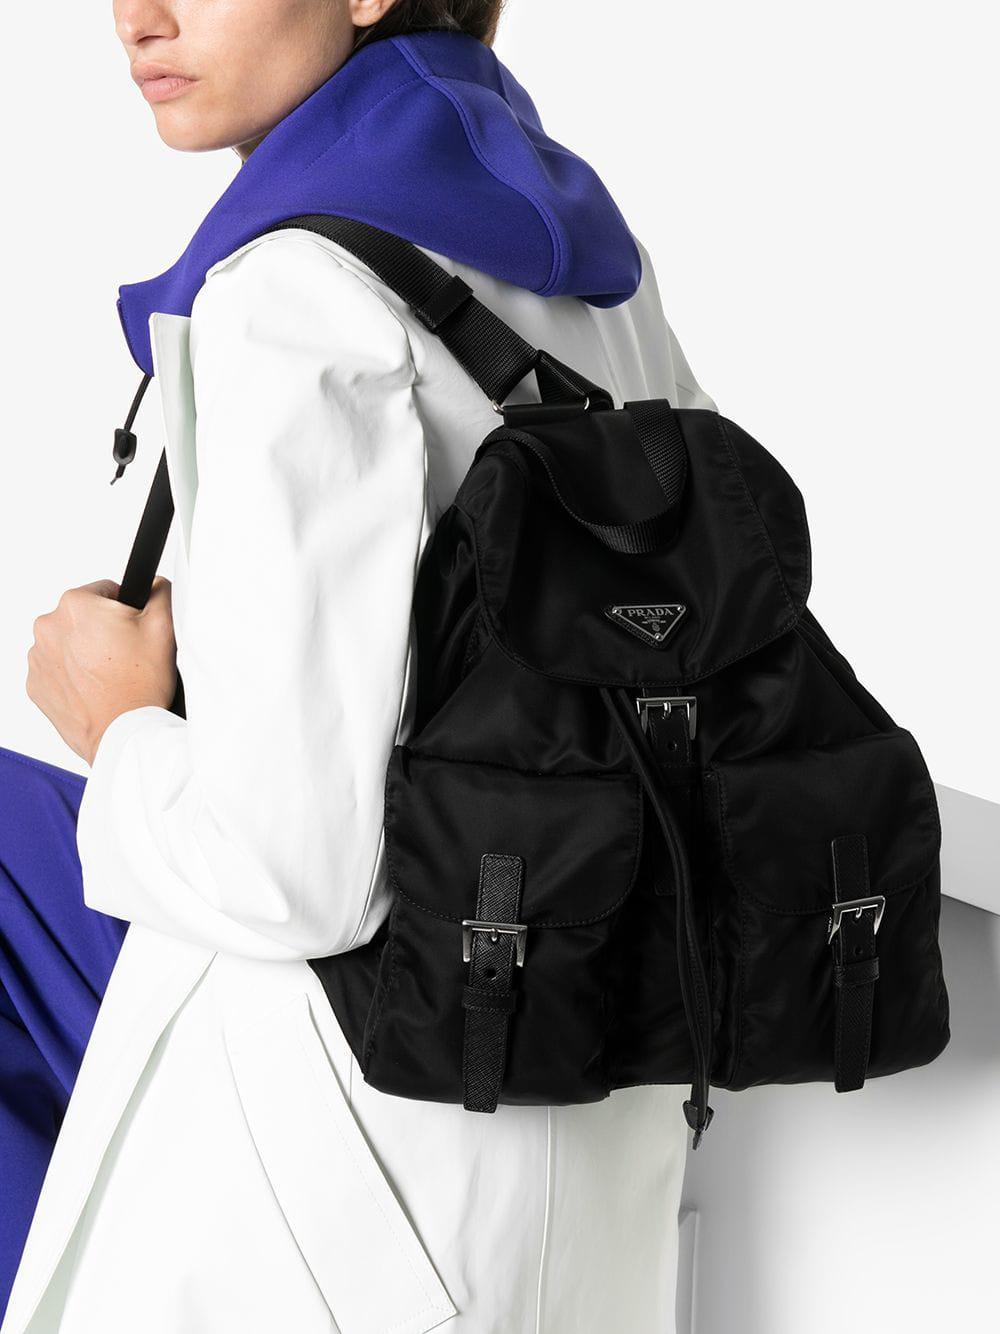 8142d4dae8a1 Prada Black Classic Nylon Backpack in Black - Lyst